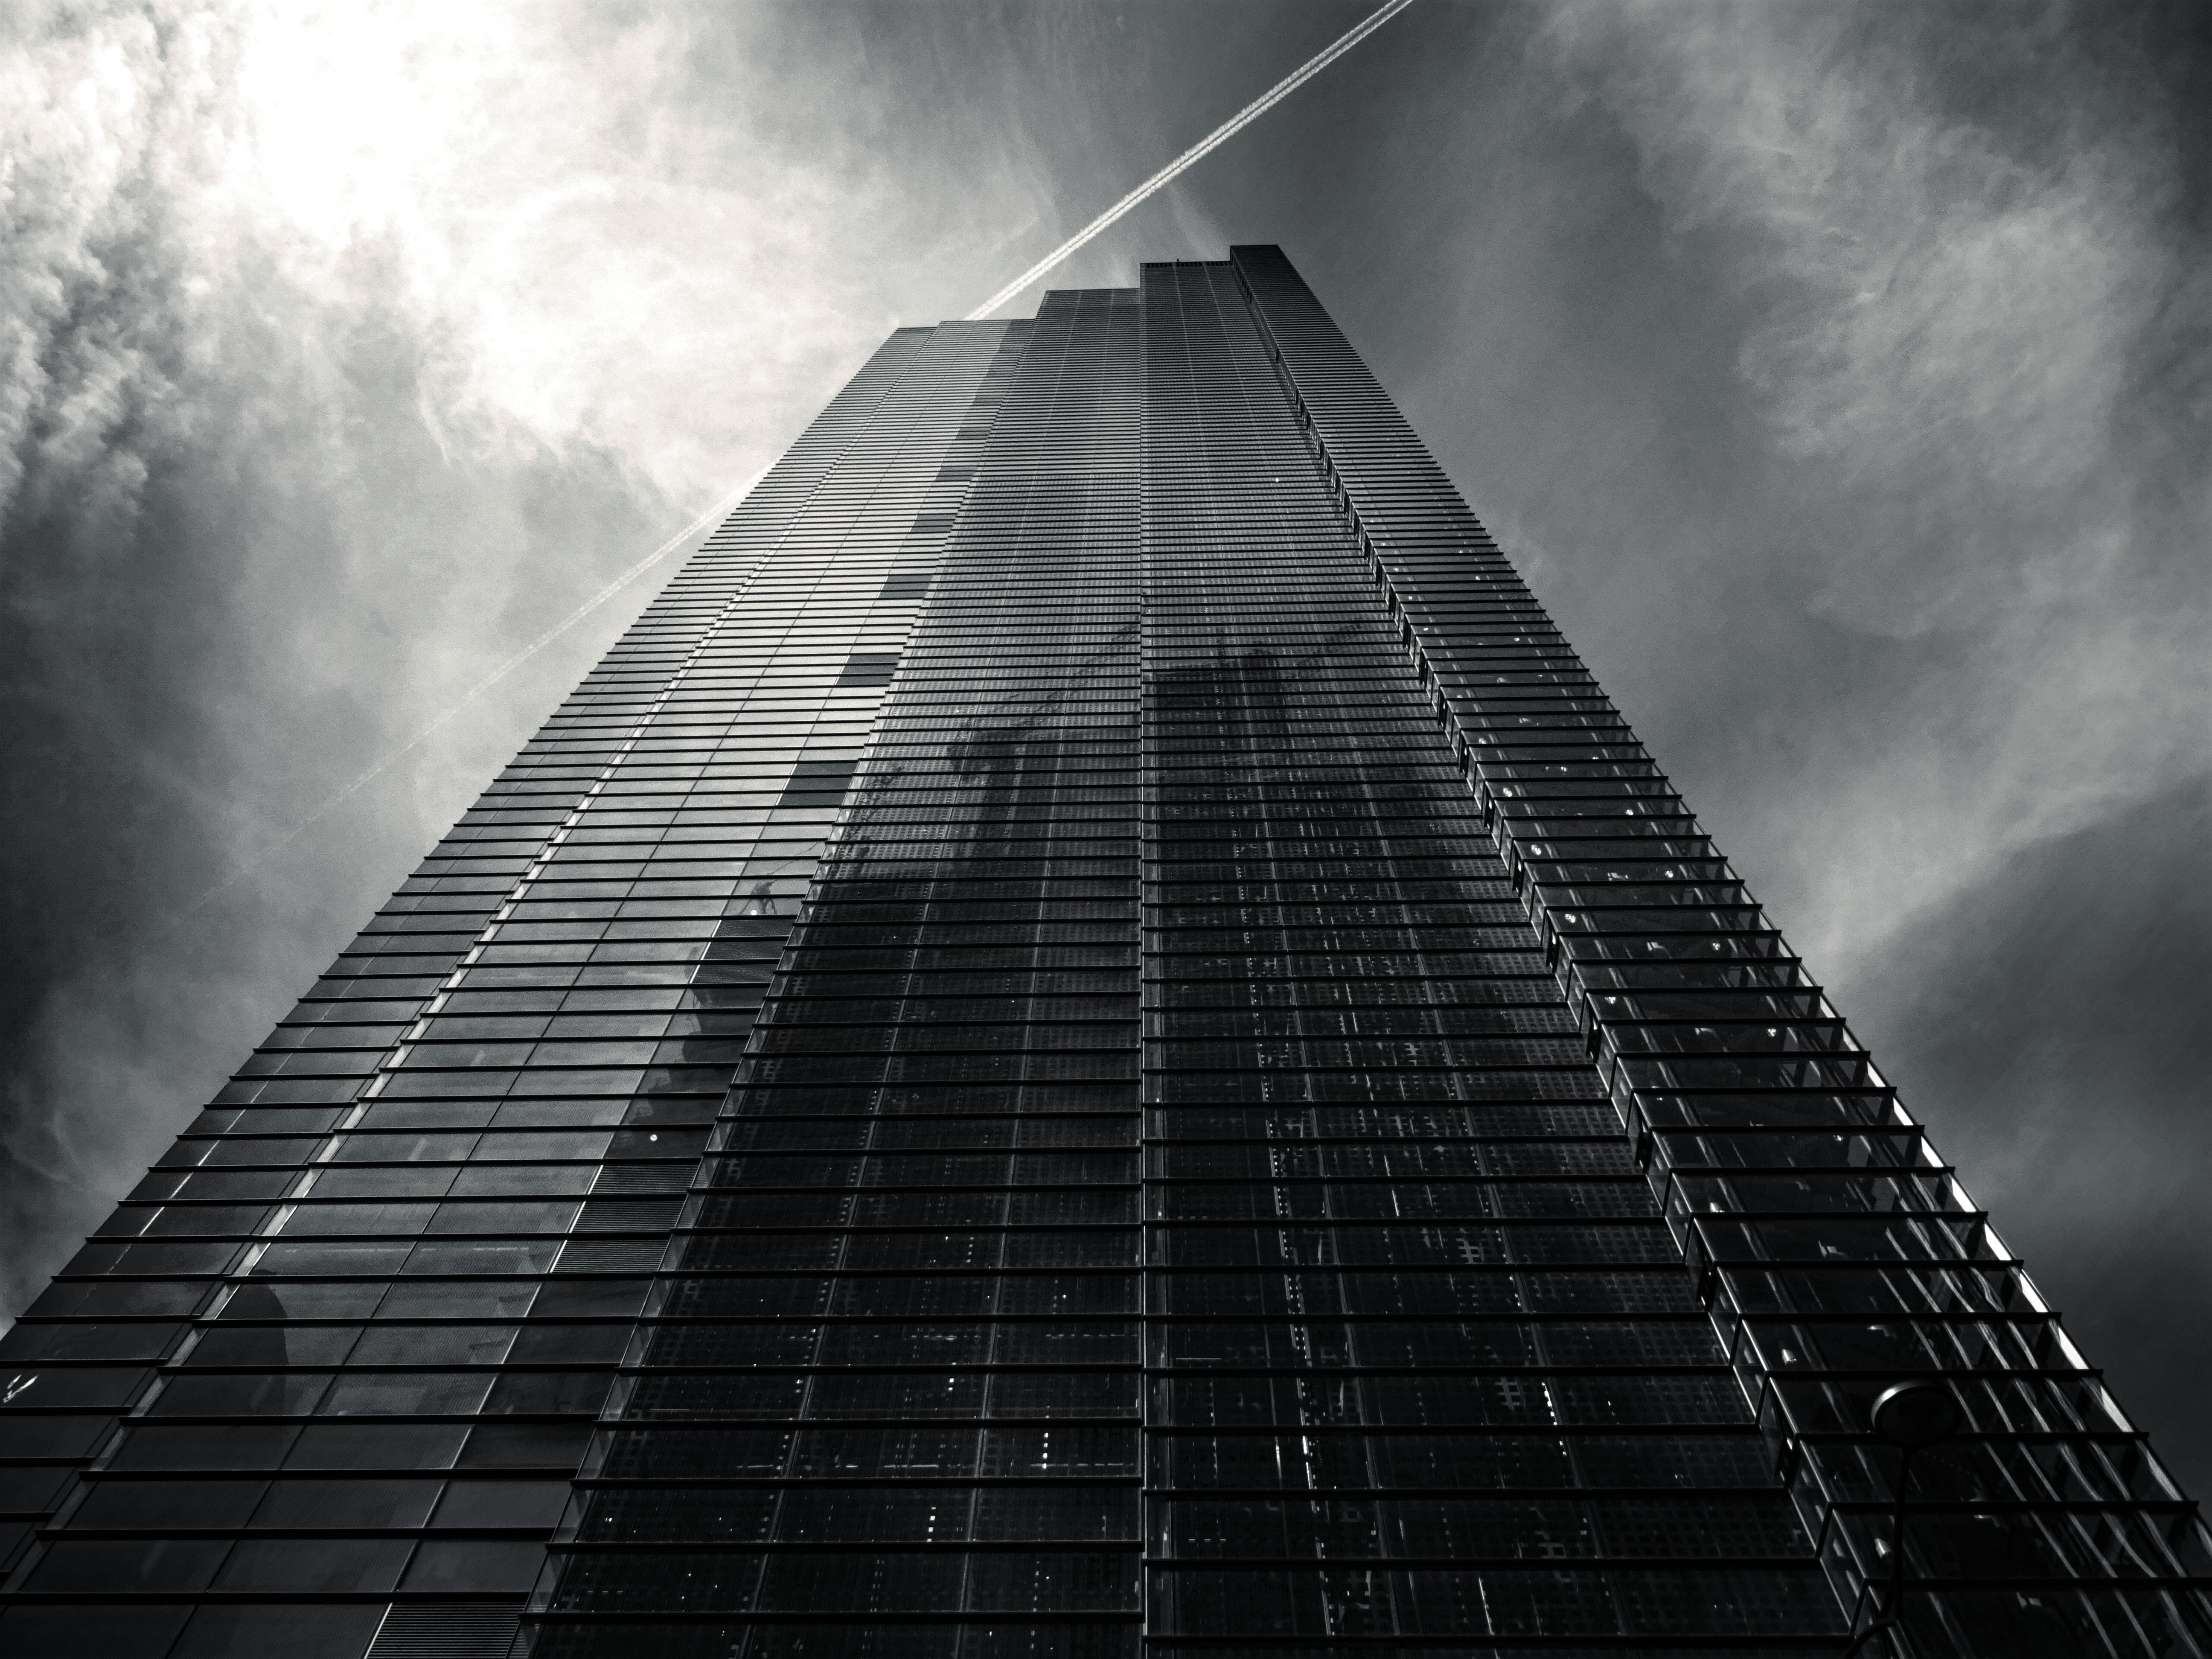 Grayscale Photography of Low-angle Building